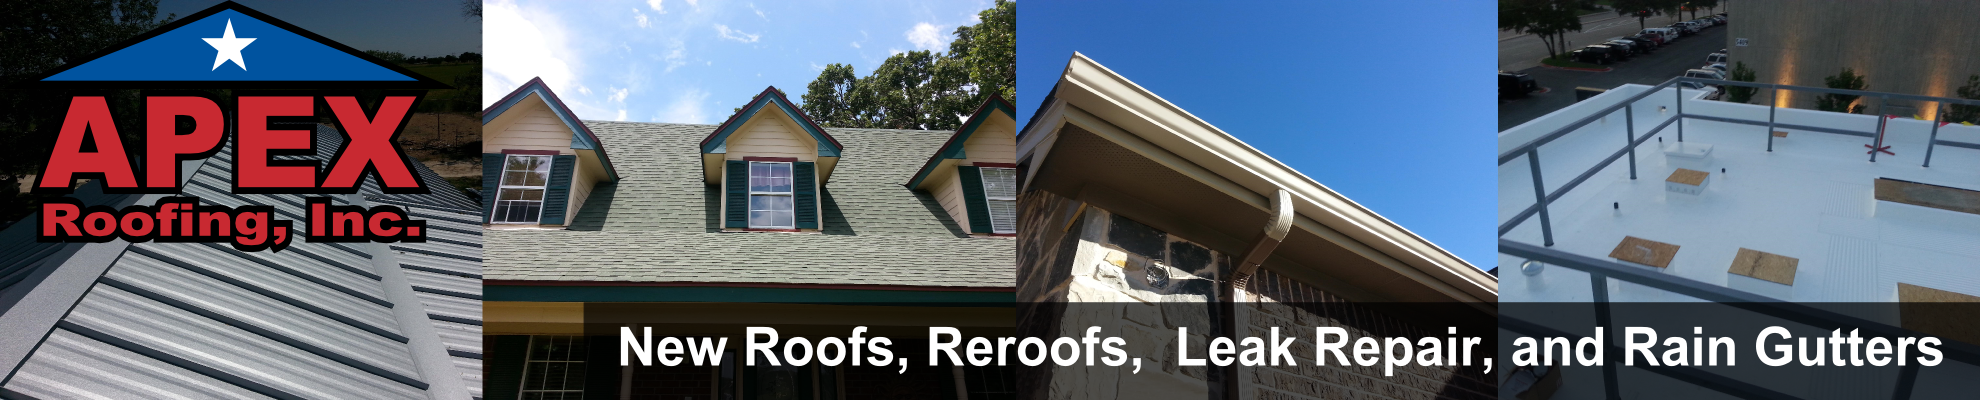 Commercial And Residential Roofing And Gutters Dfw